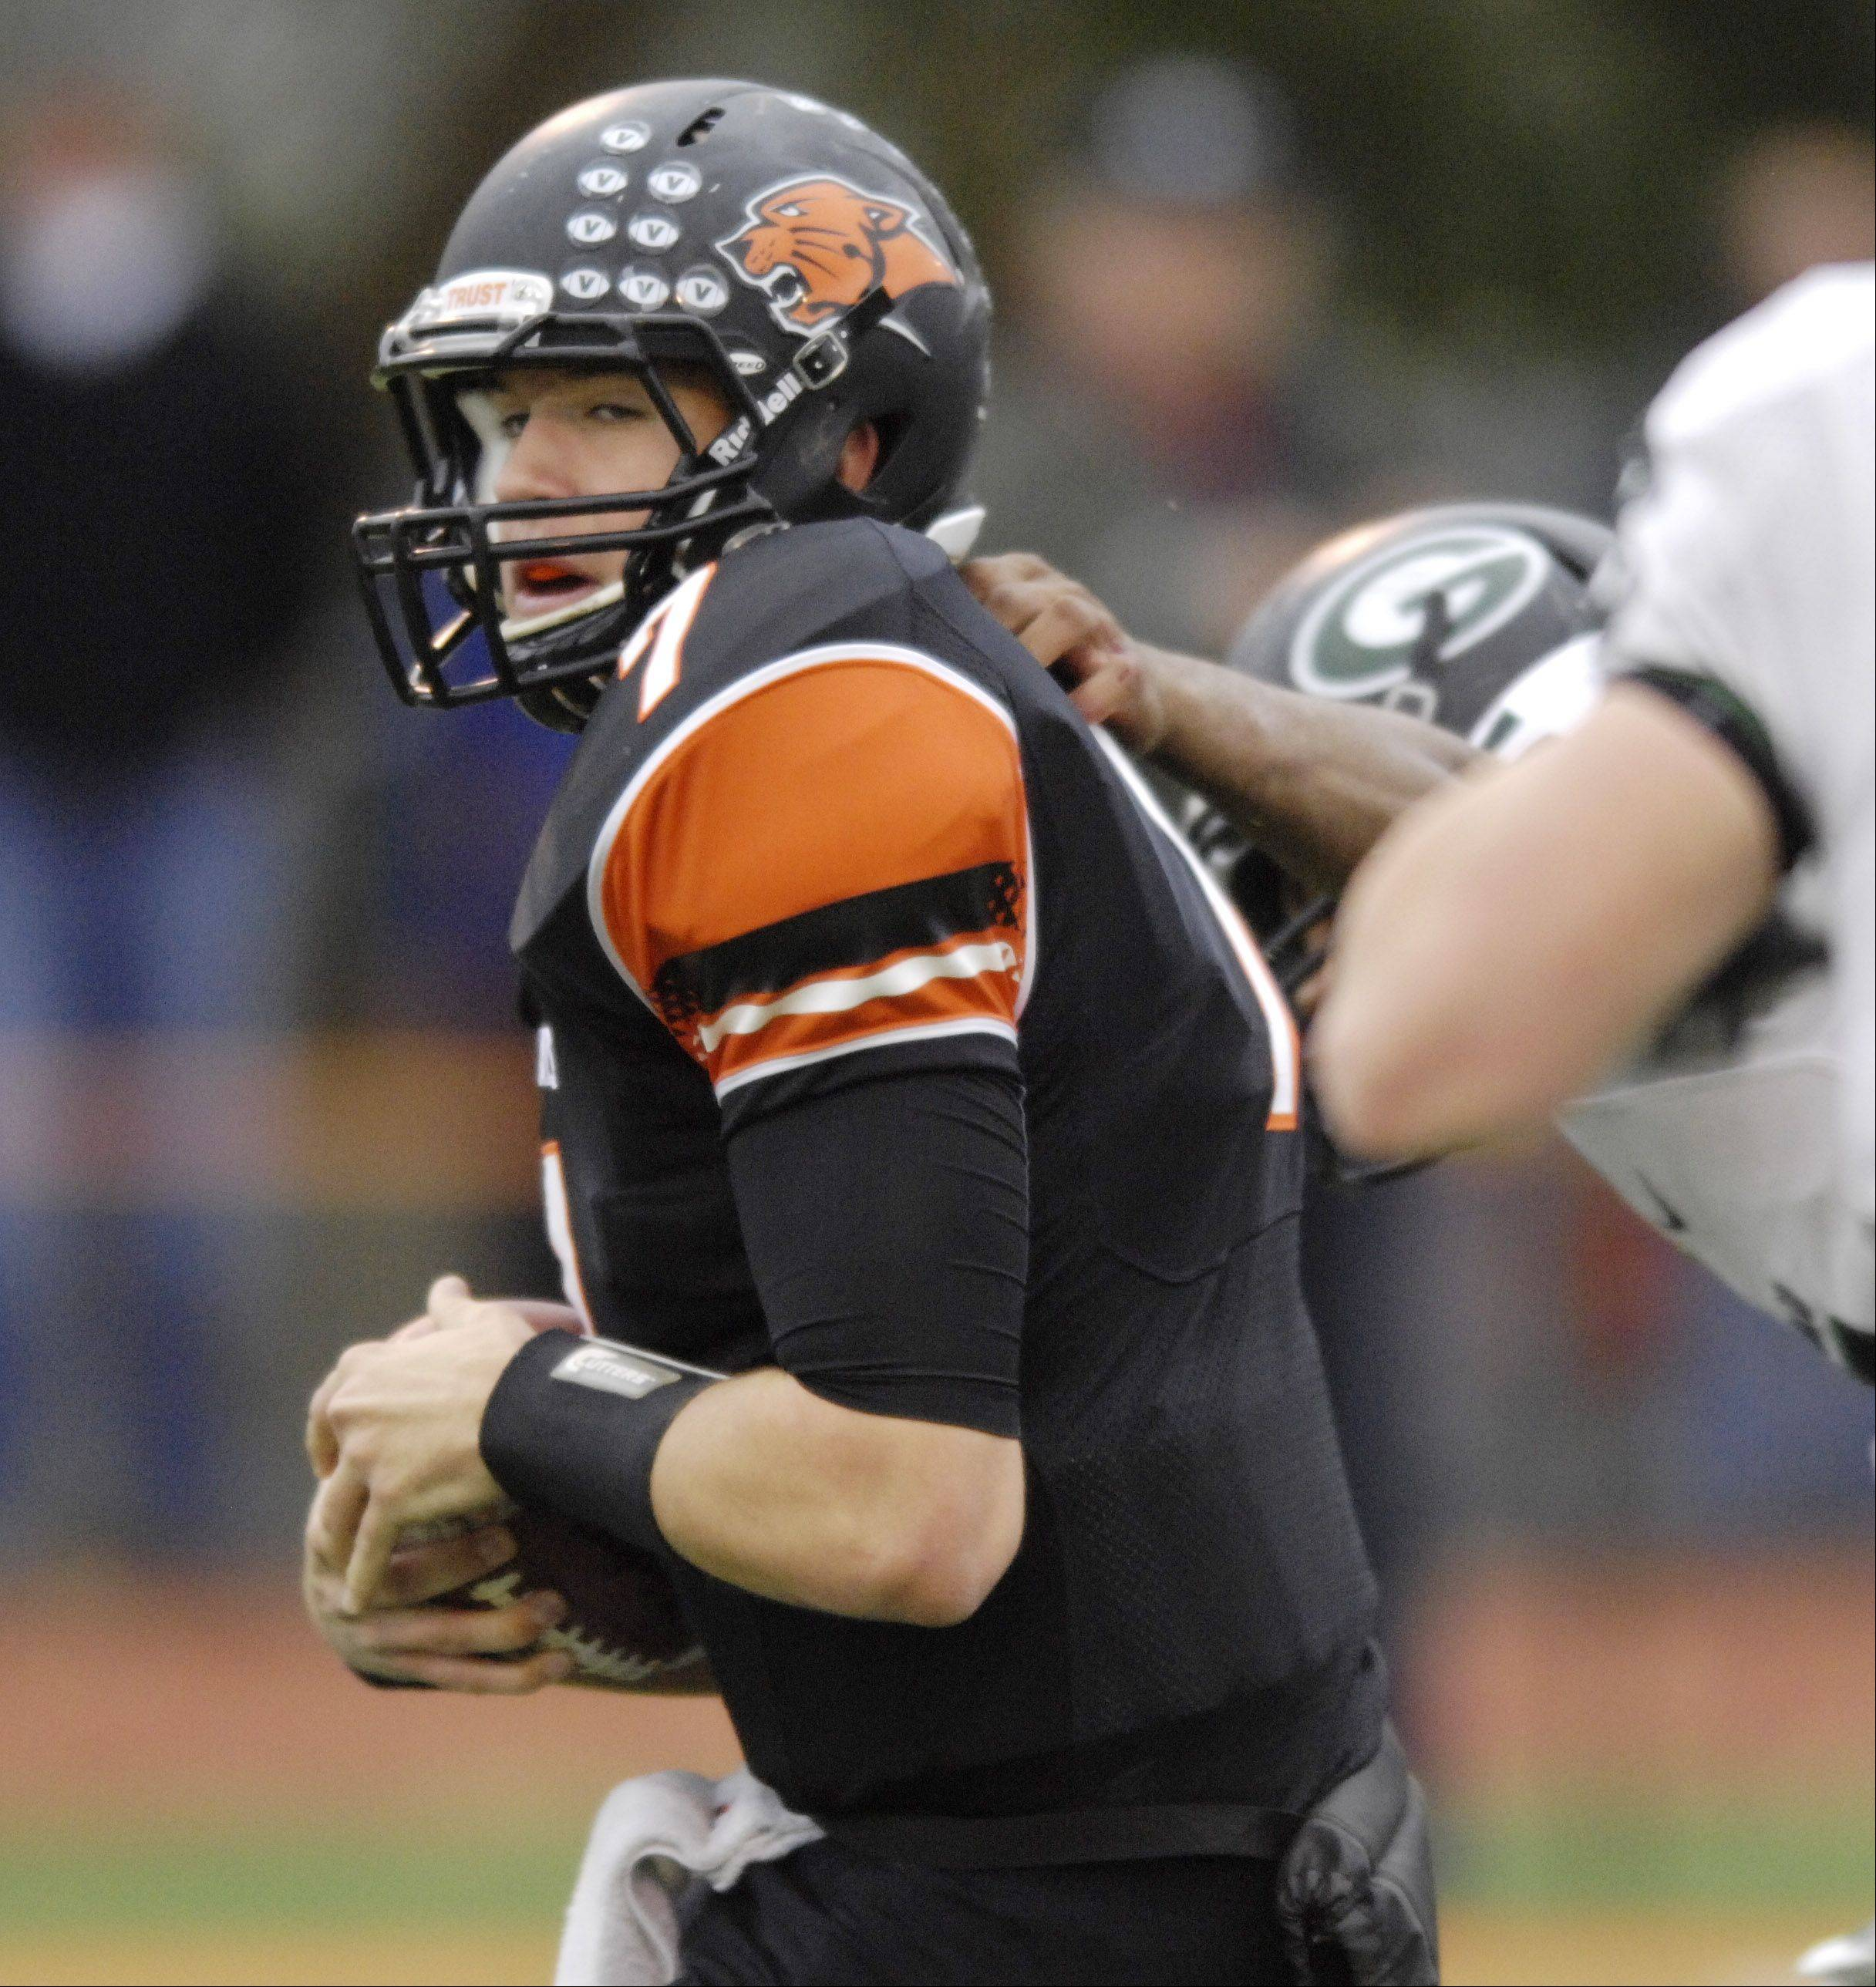 Libertyville quarterback Jack Deichl tries to avoid a sack during Saturday's game against Glenbard West.